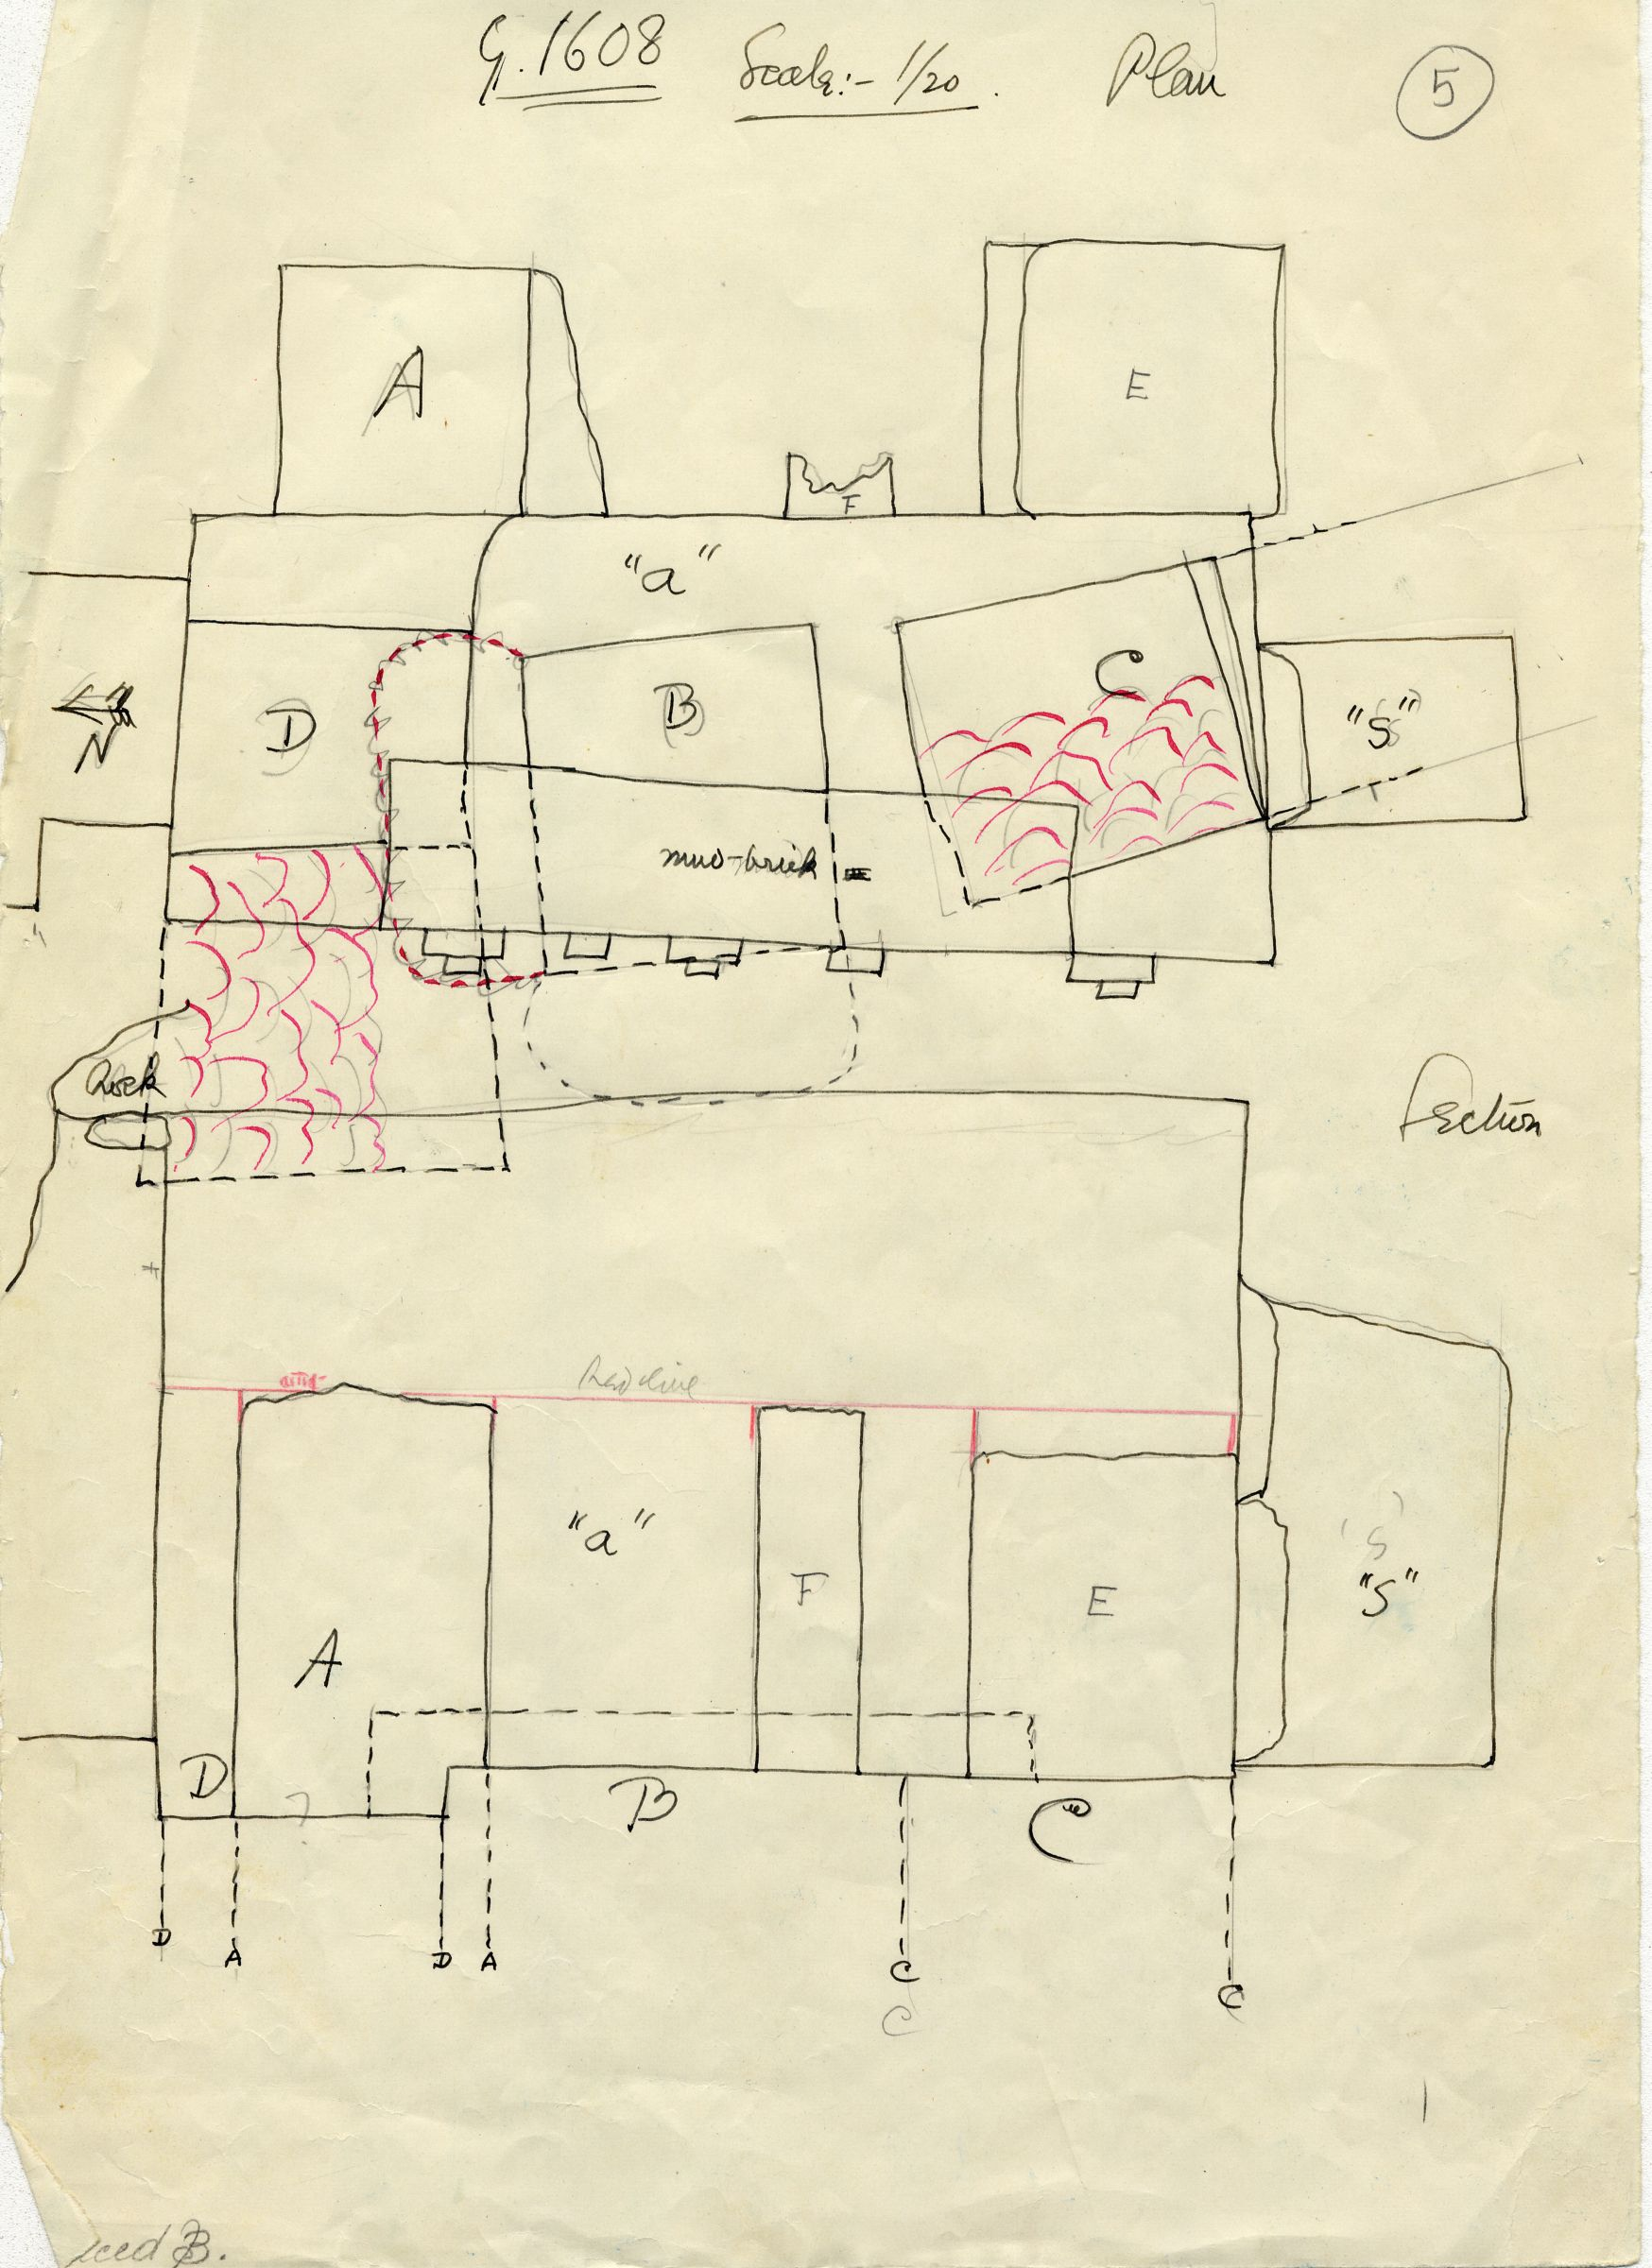 Maps and plans: G 1608, Overall plan with shafts A, B, C, D, E